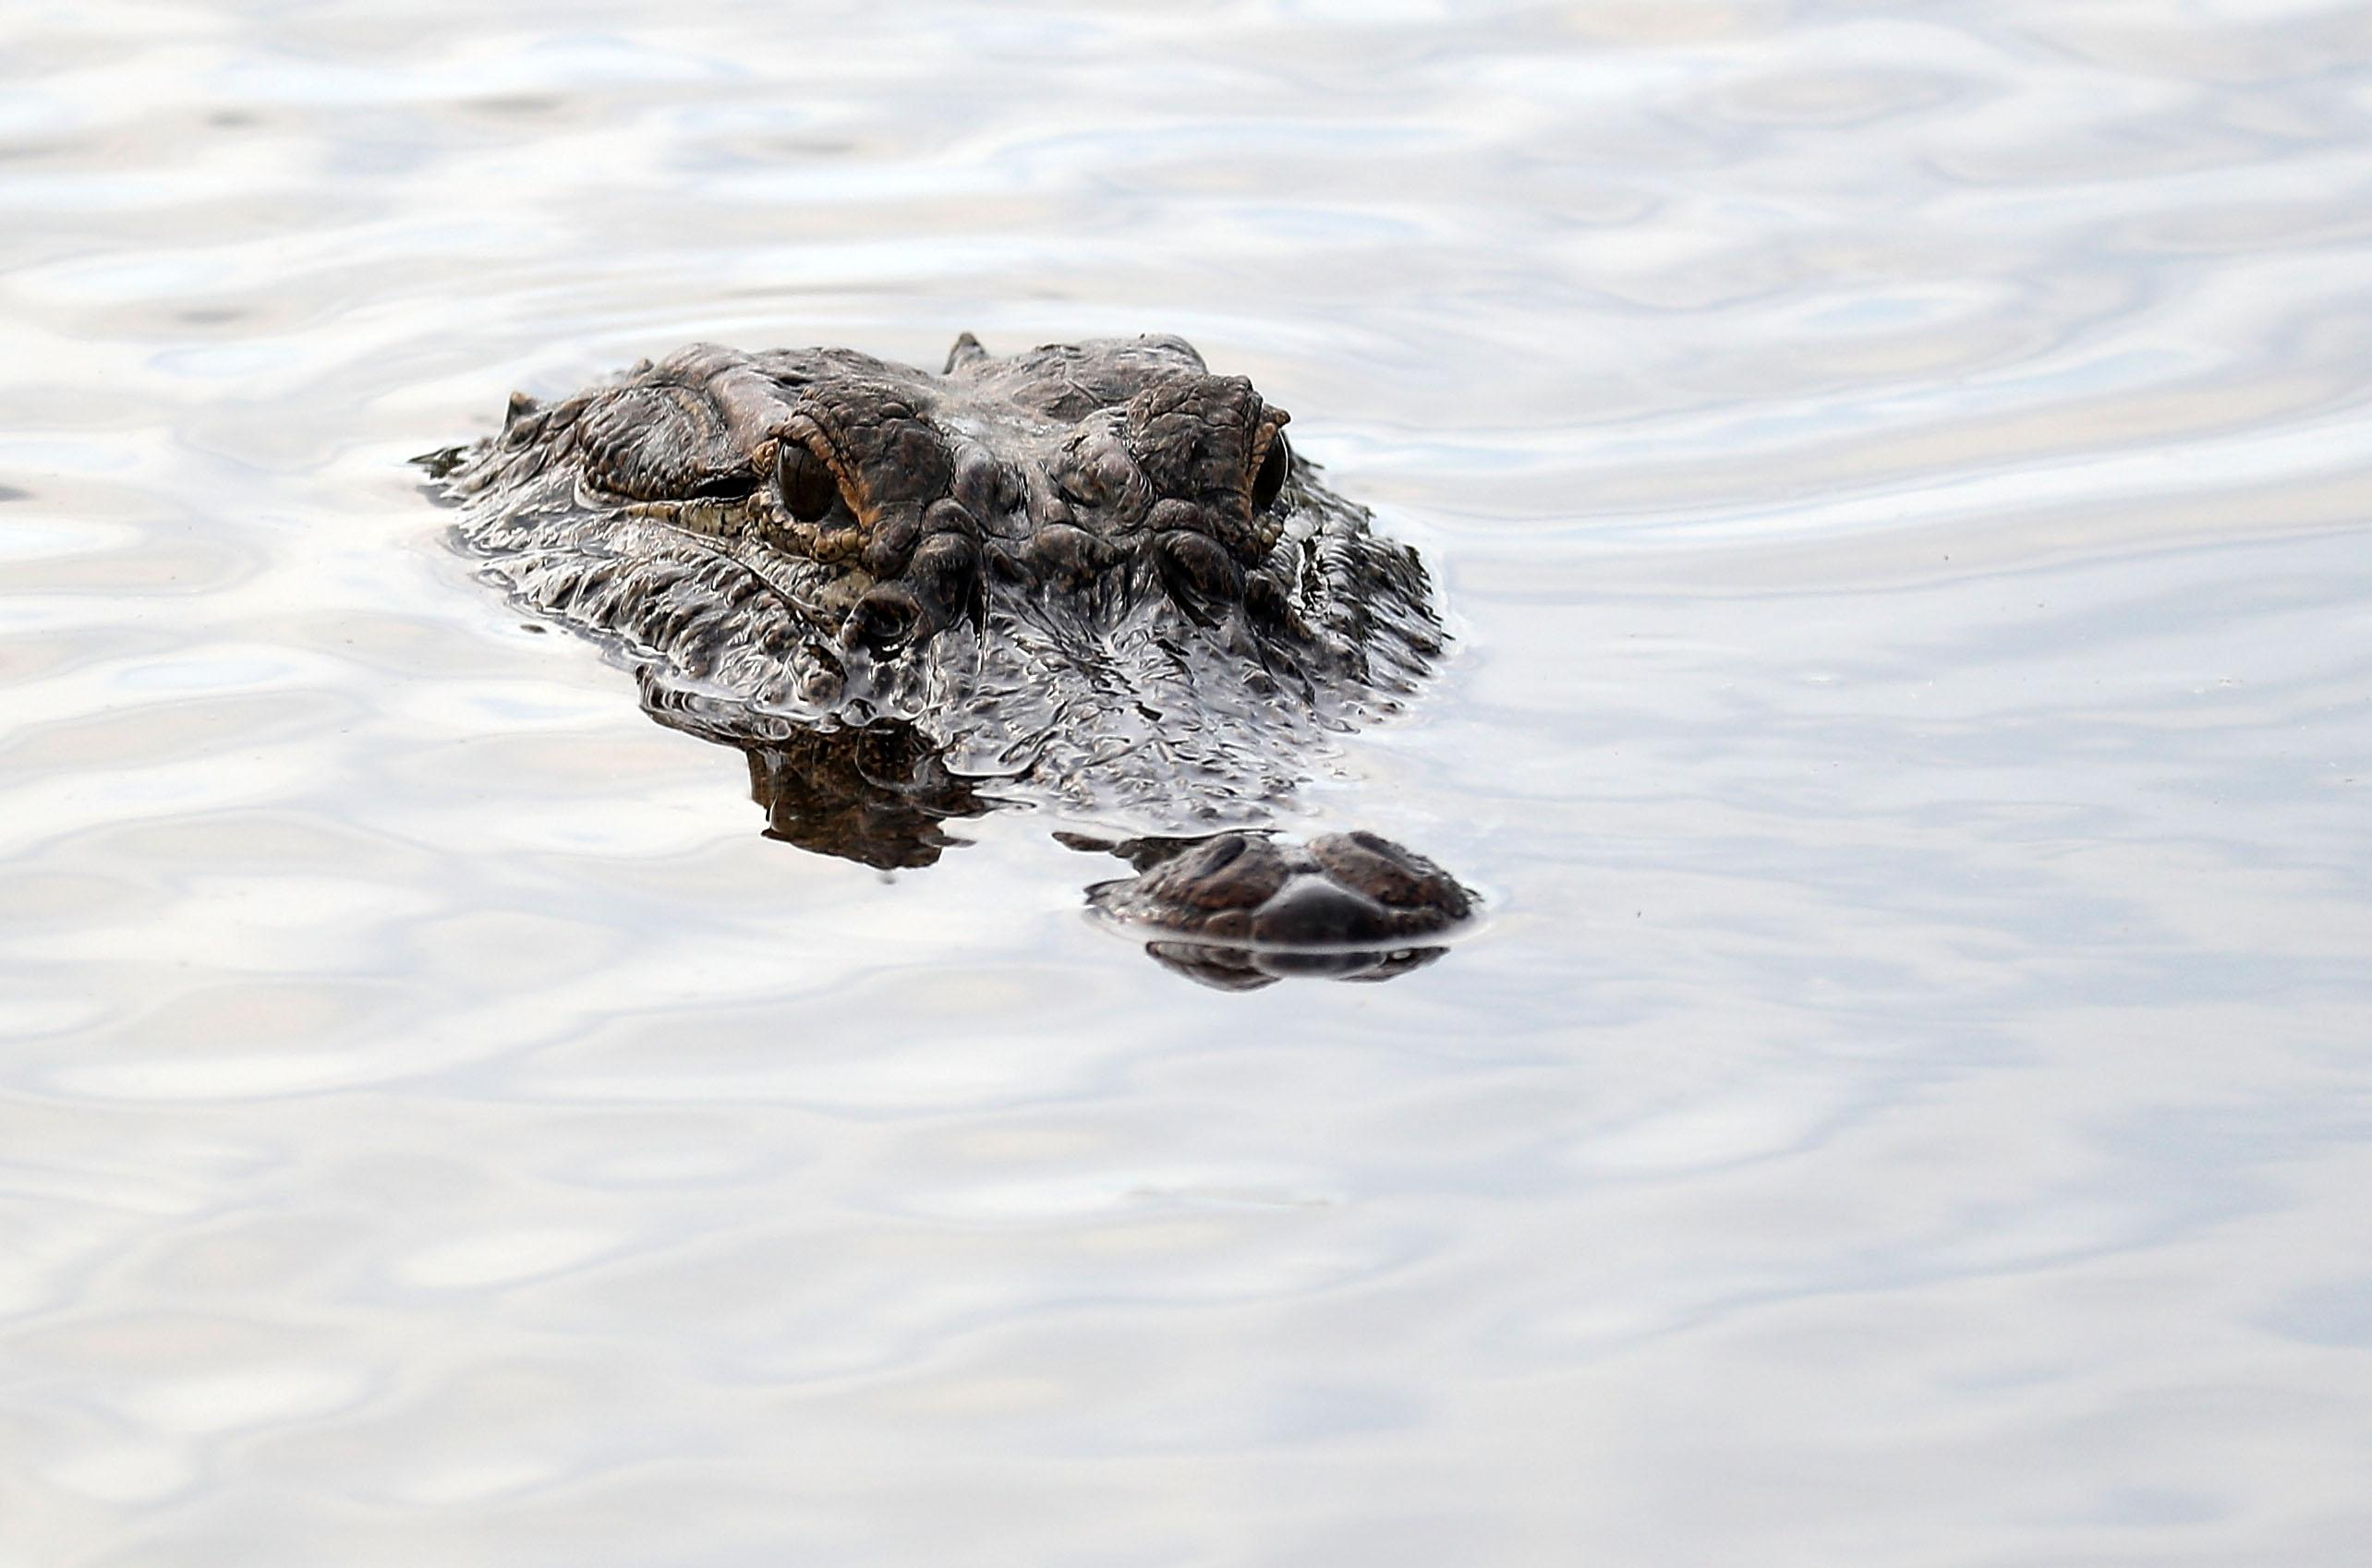 The top of the head of an alligator is just visible above water